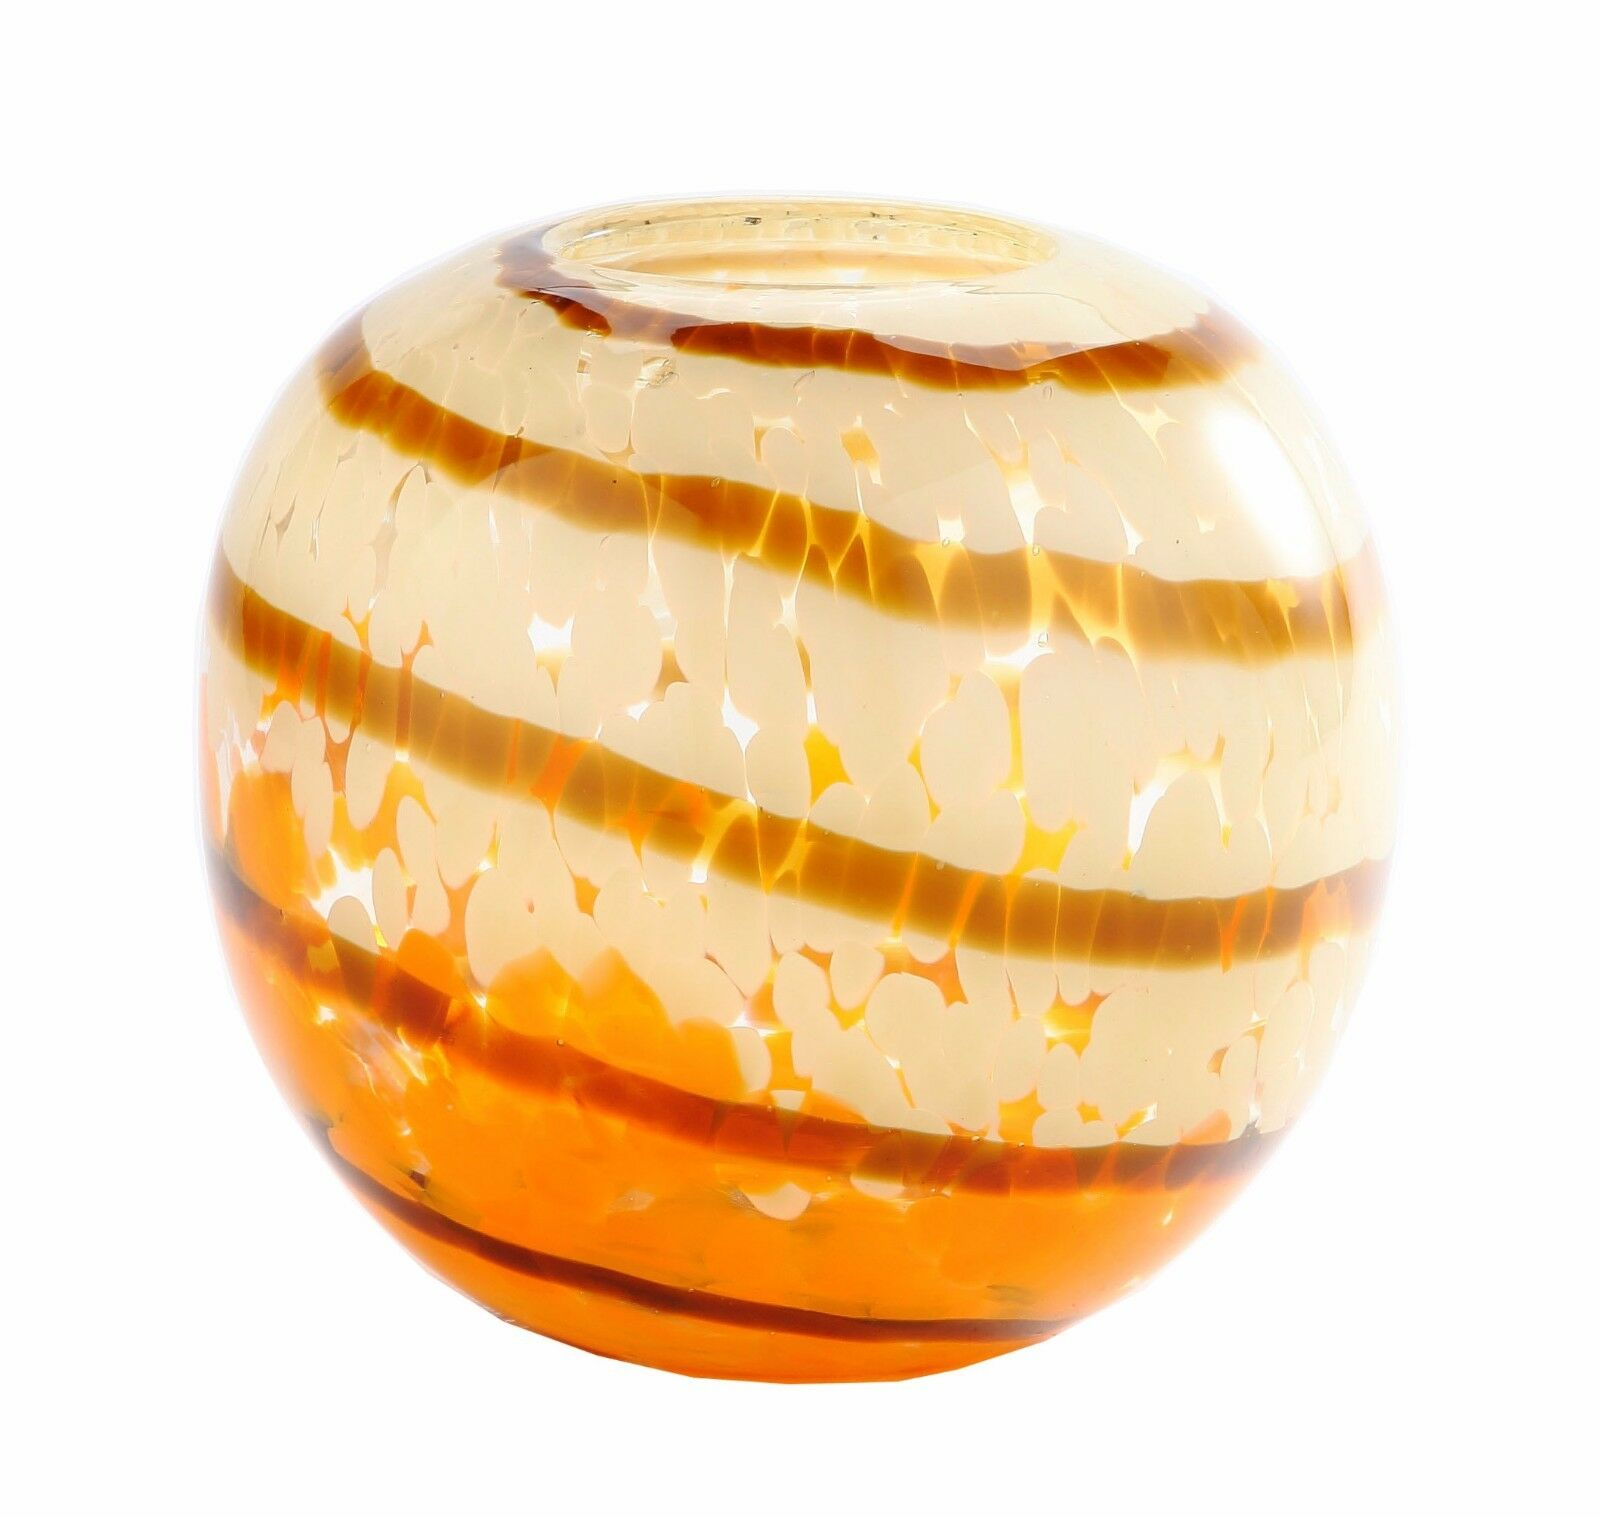 New 6  Hand Blown Glass Art Vase Bowl Orange Weiß Amber Stripes Decorative